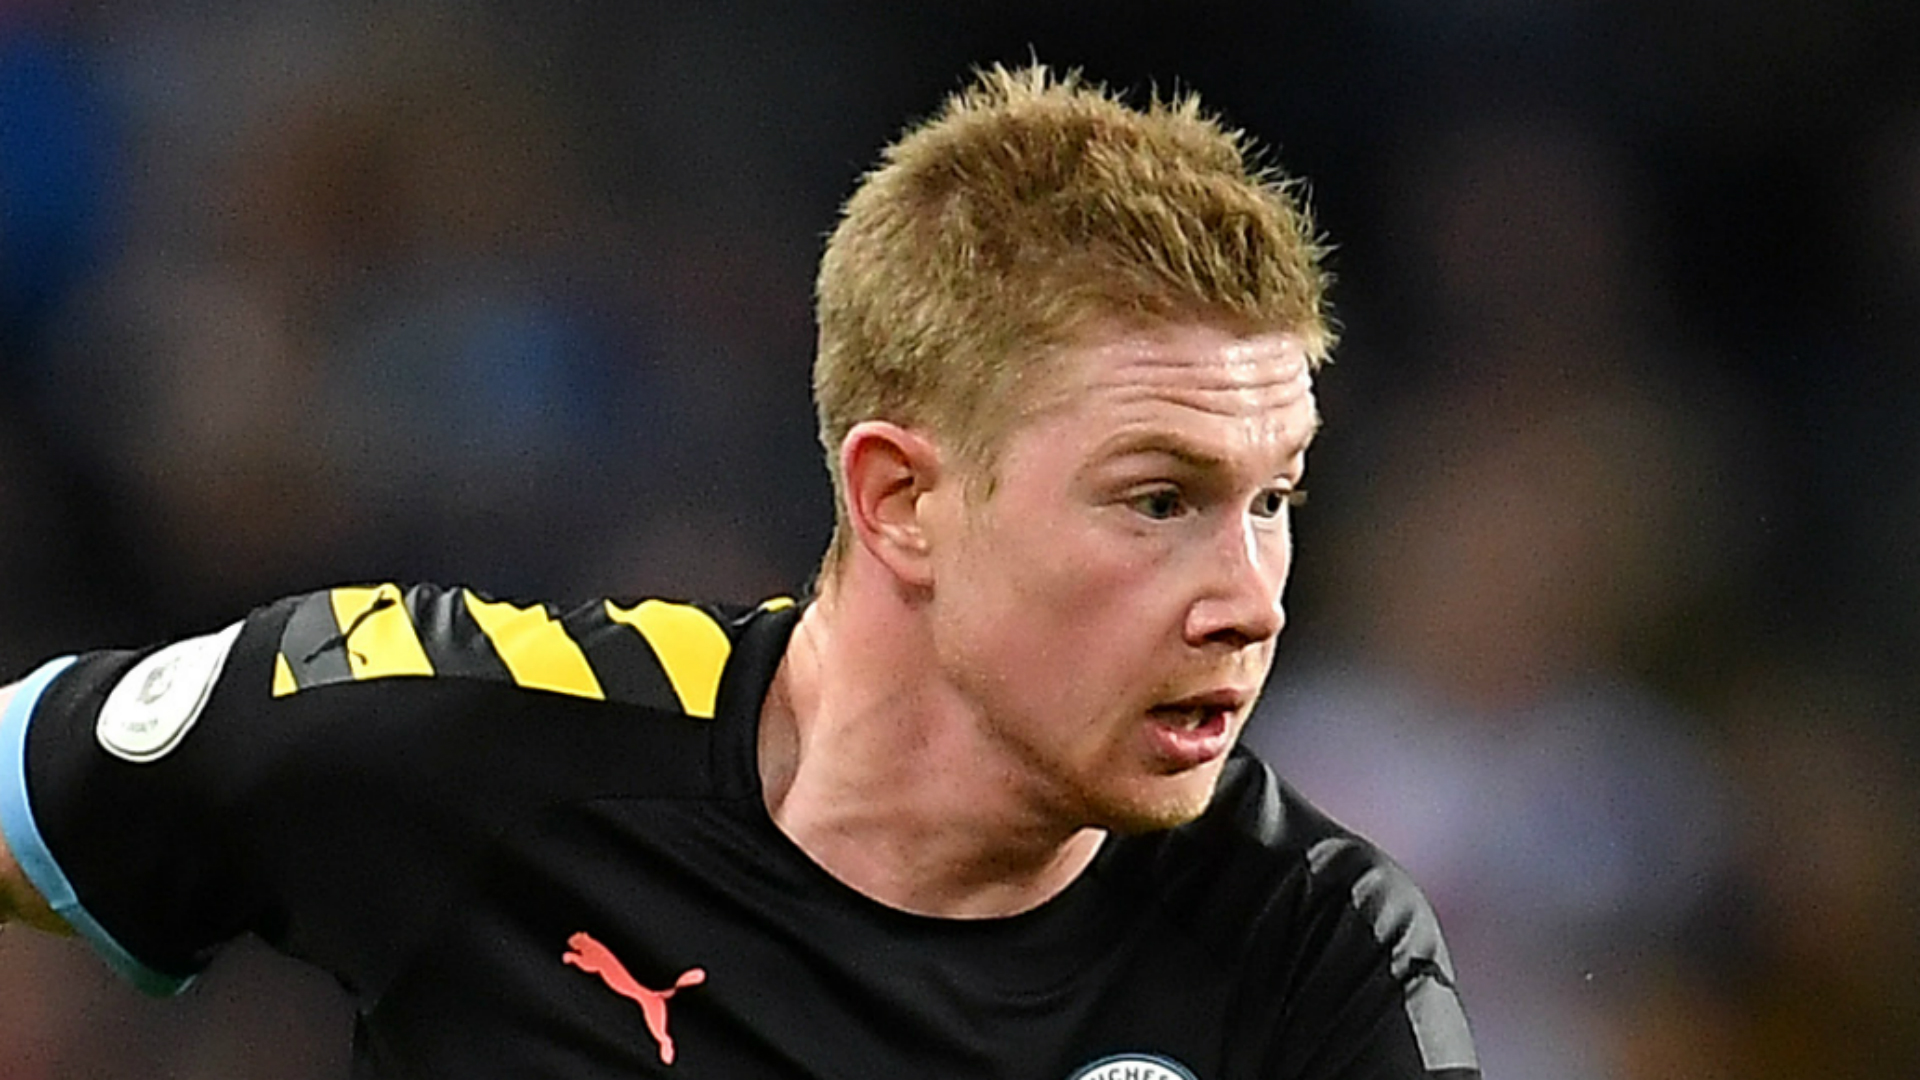 Guardiola benches De Bruyne for Man City's EFL Cup final clash with Aston Villa